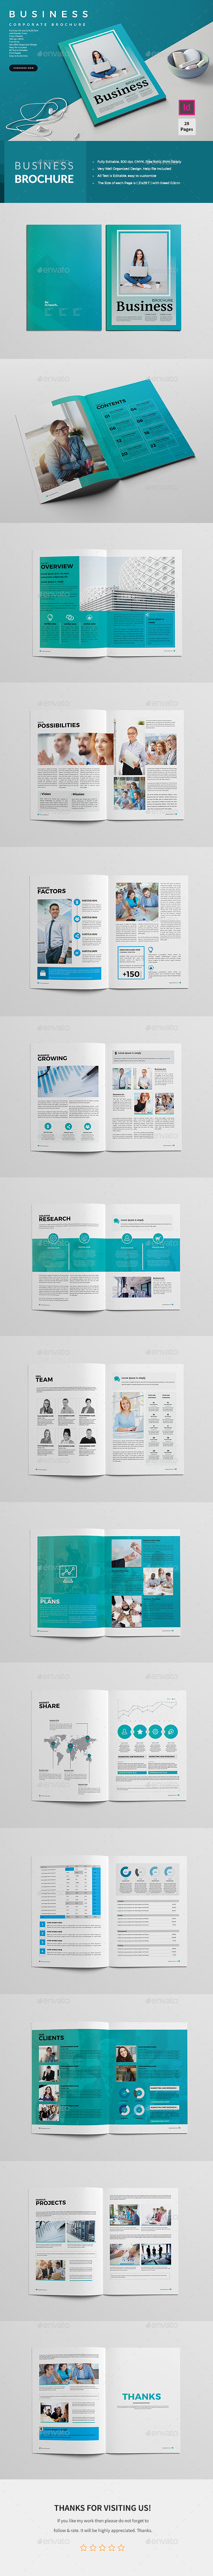 Business Brochure 28 Pages - Corporate Brochures